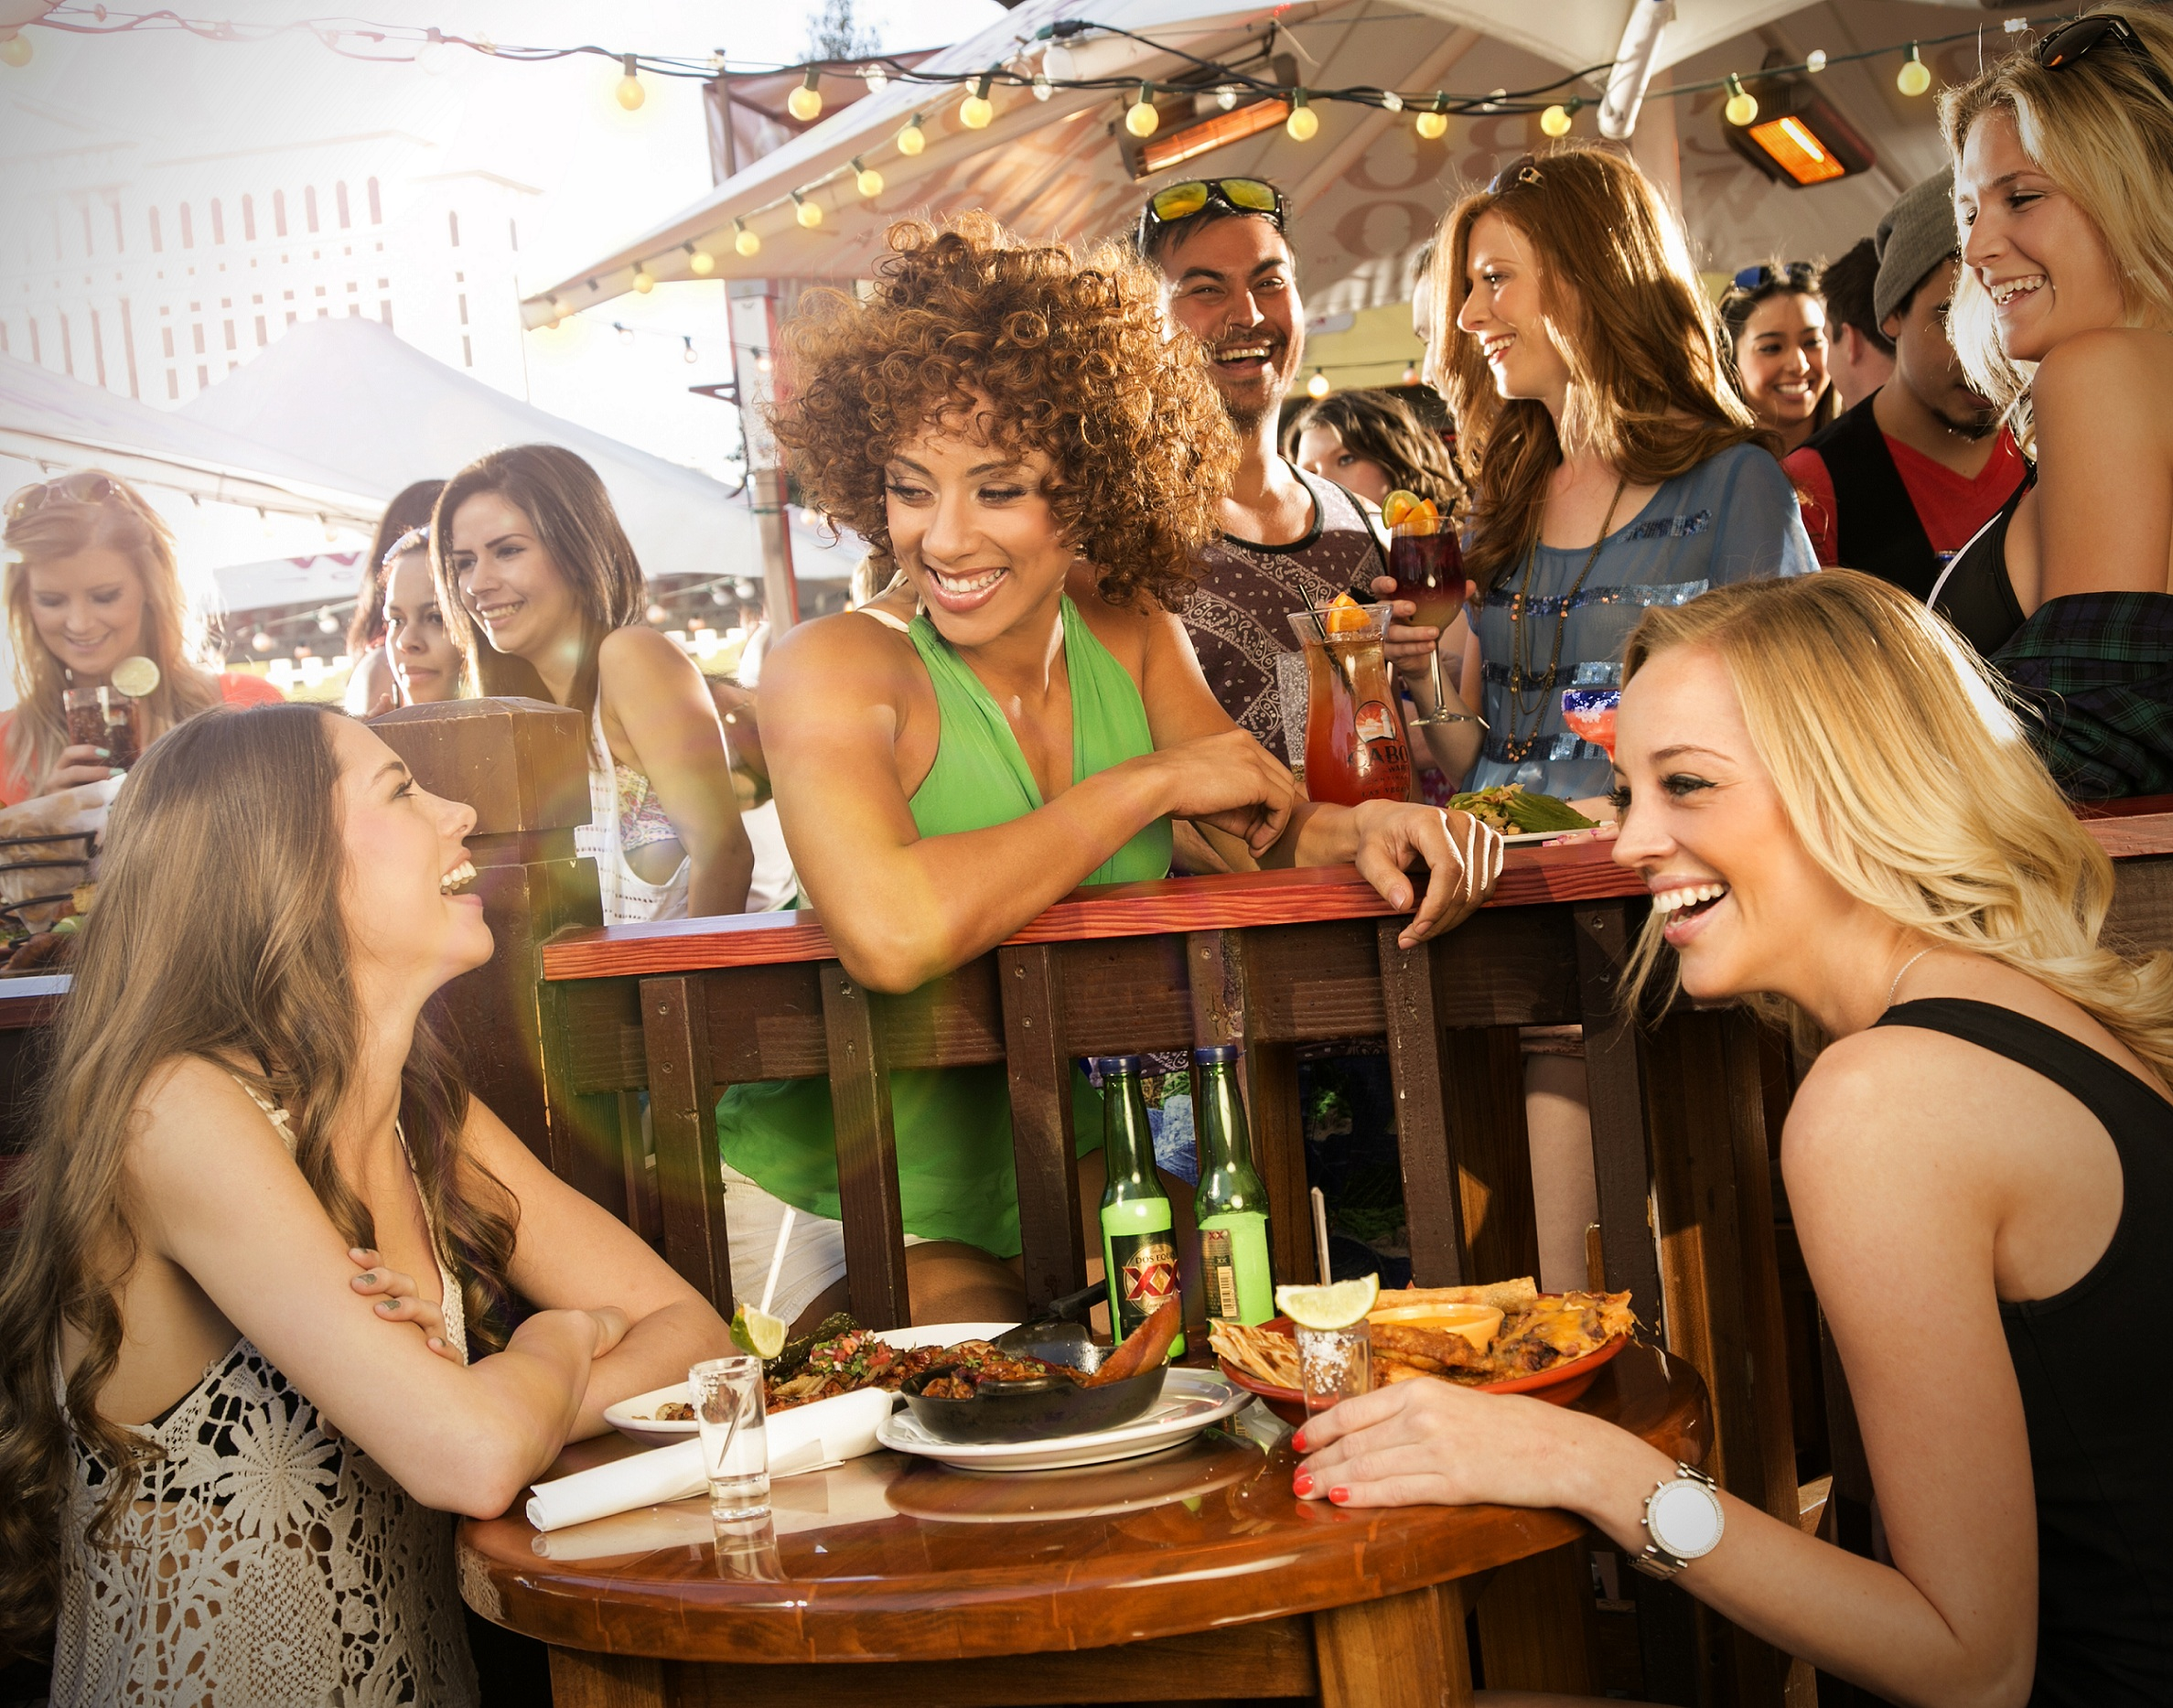 Get your Cinco de Mayo party on at Cabo Wabo Cantina, photo by Brian Brow, courtesy of Cabo Wabo.